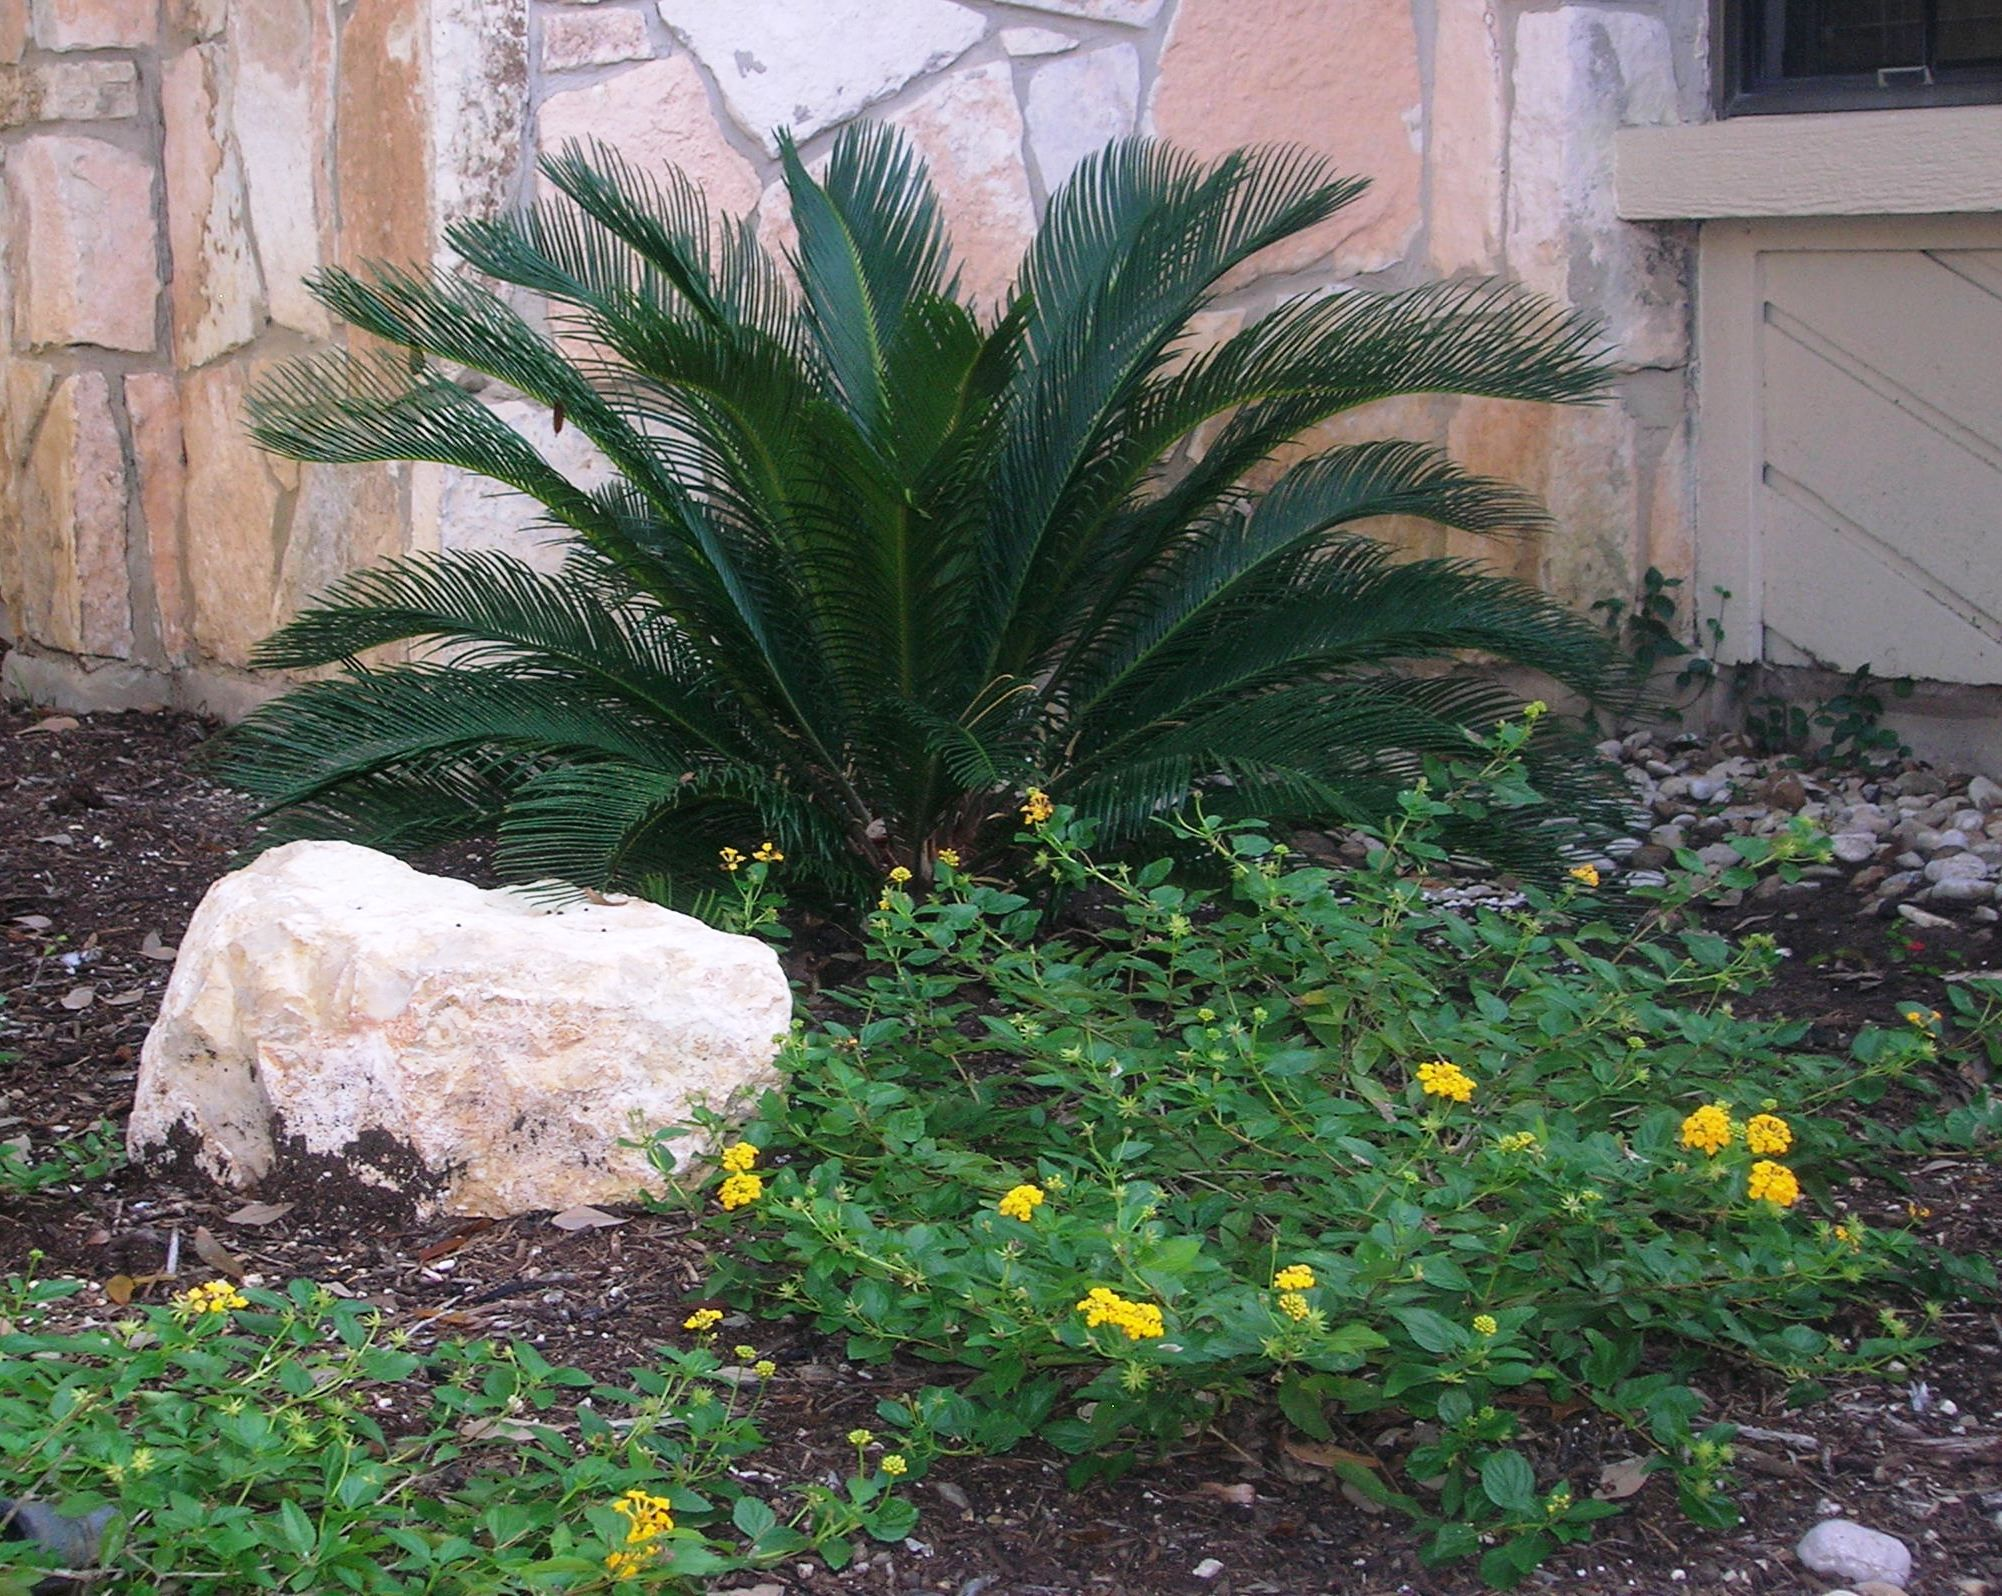 sago palm yellow lantana just coming out sago palmlandscaping ideasbackyard ideasgarden ideastropical